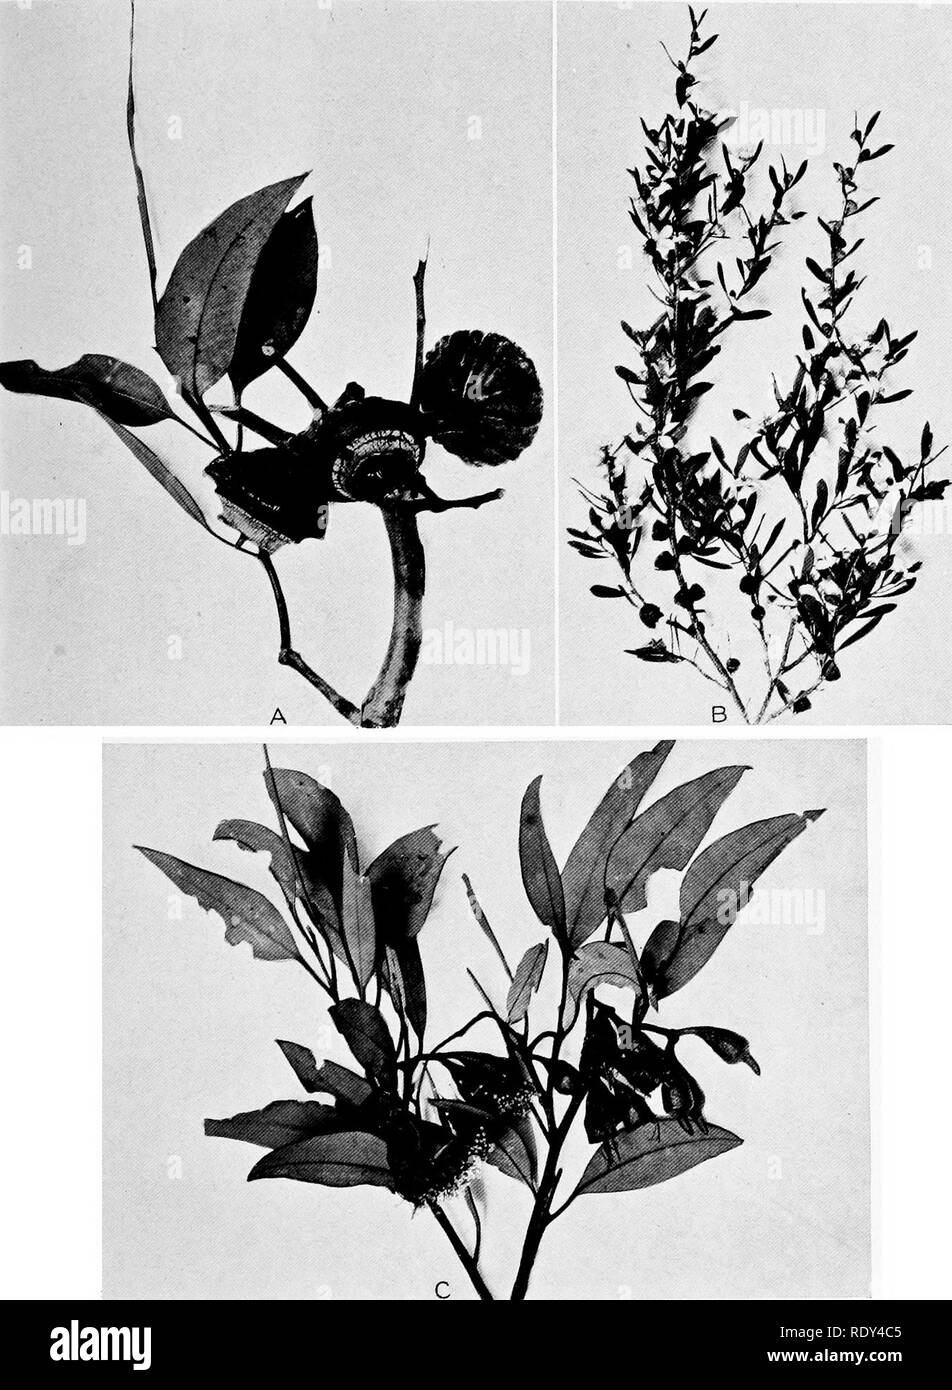 . Plant habits and habitats in the arid portions of South Australia. Plant ecology; Botany; Desert plants. CANNON PLATE 22. A. Fruits of Eucalyptus pyriformis from Ooldea. The fruits are about 5 cm. in diameter. B. Leptospermum lavigatum var. minus, in flower, from the Ooldea Soak. C The shrubby Eucalyptus leucoxylon var. macrocarpa, in flower, from Station 408, near Ooldea.. Please note that these images are extracted from scanned page images that may have been digitally enhanced for readability - coloration and appearance of these illustrations may not perfectly resemble the original work..  - Stock Image